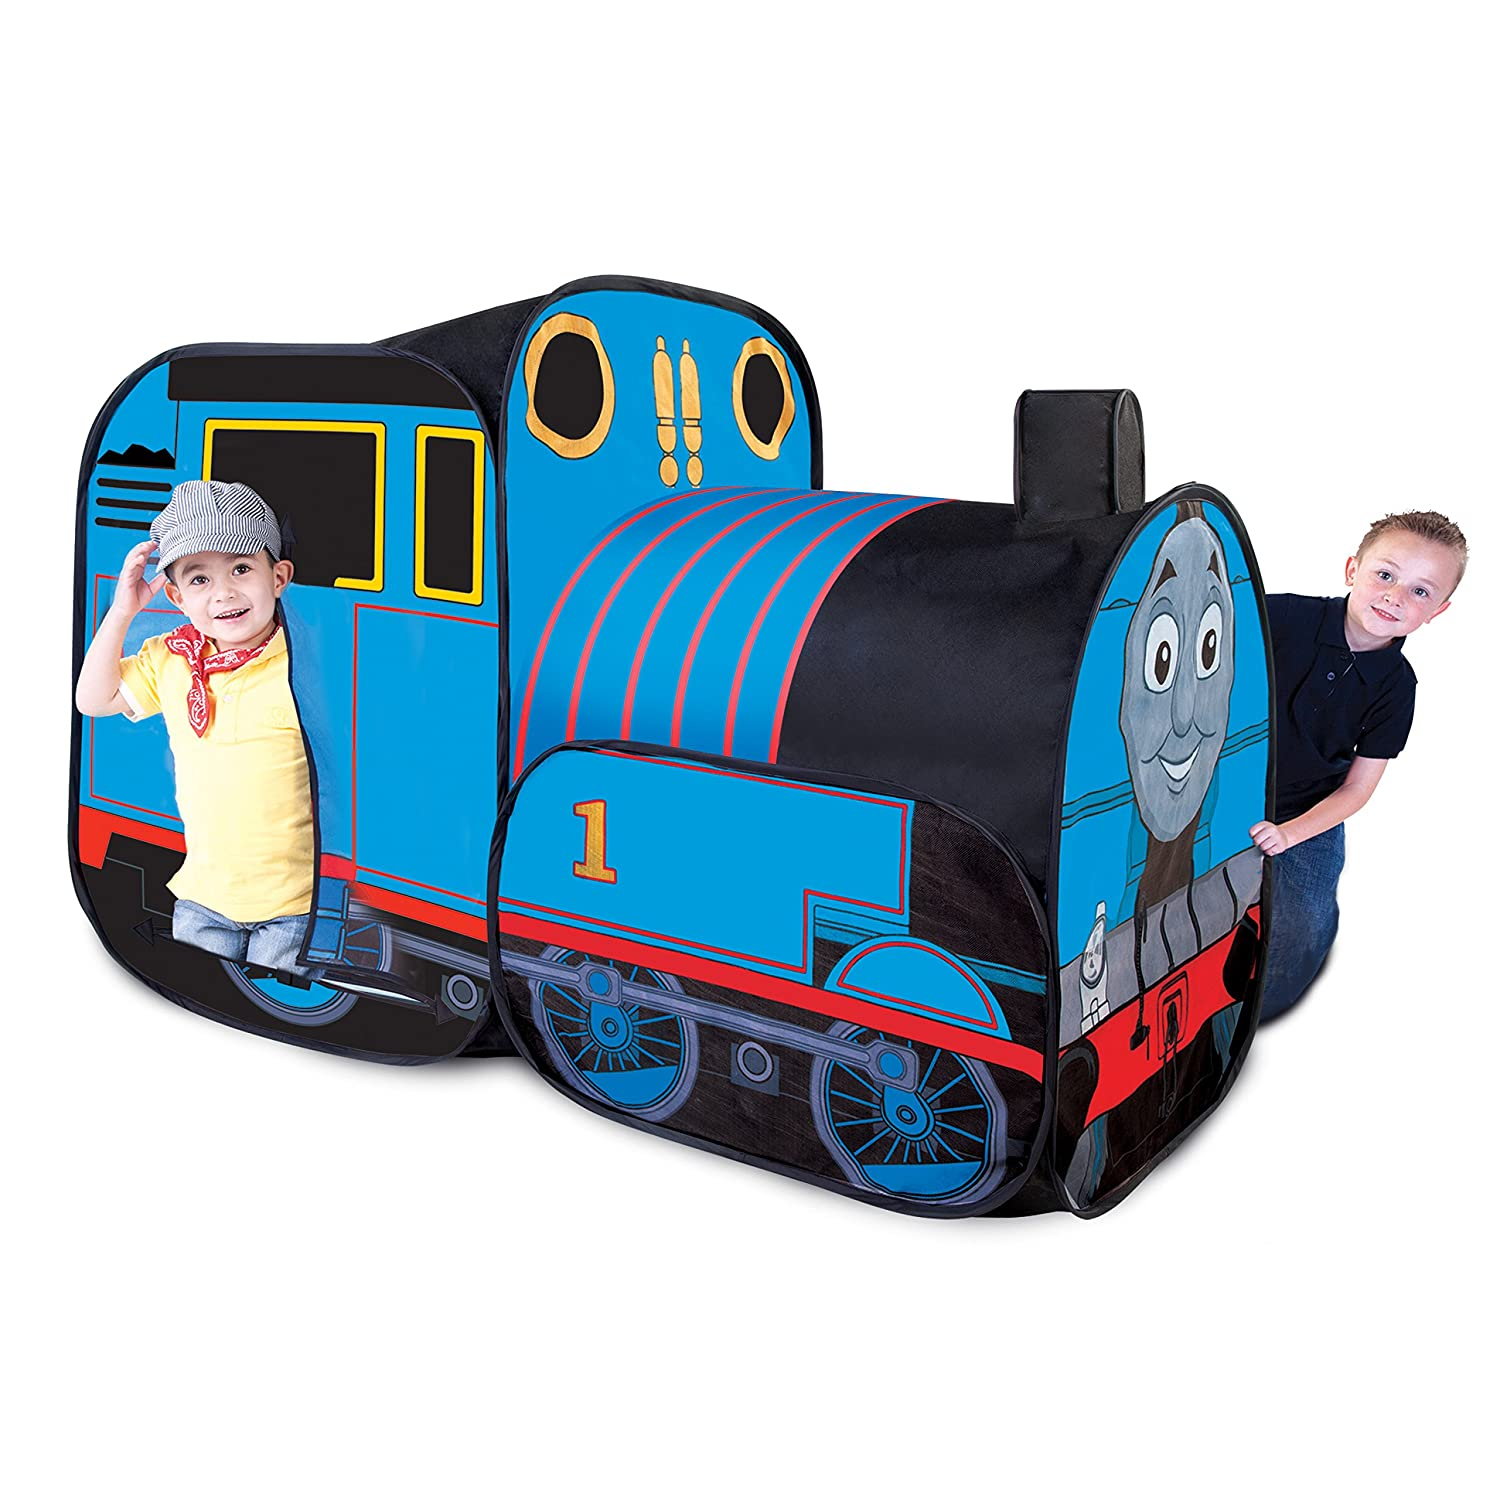 Playhut Thomas the Train Play Vehicle  sc 1 st  Amazon.com & Amazon.com: Play Tents u0026 Tunnels: Toys u0026 Games: Play Tents Play ...